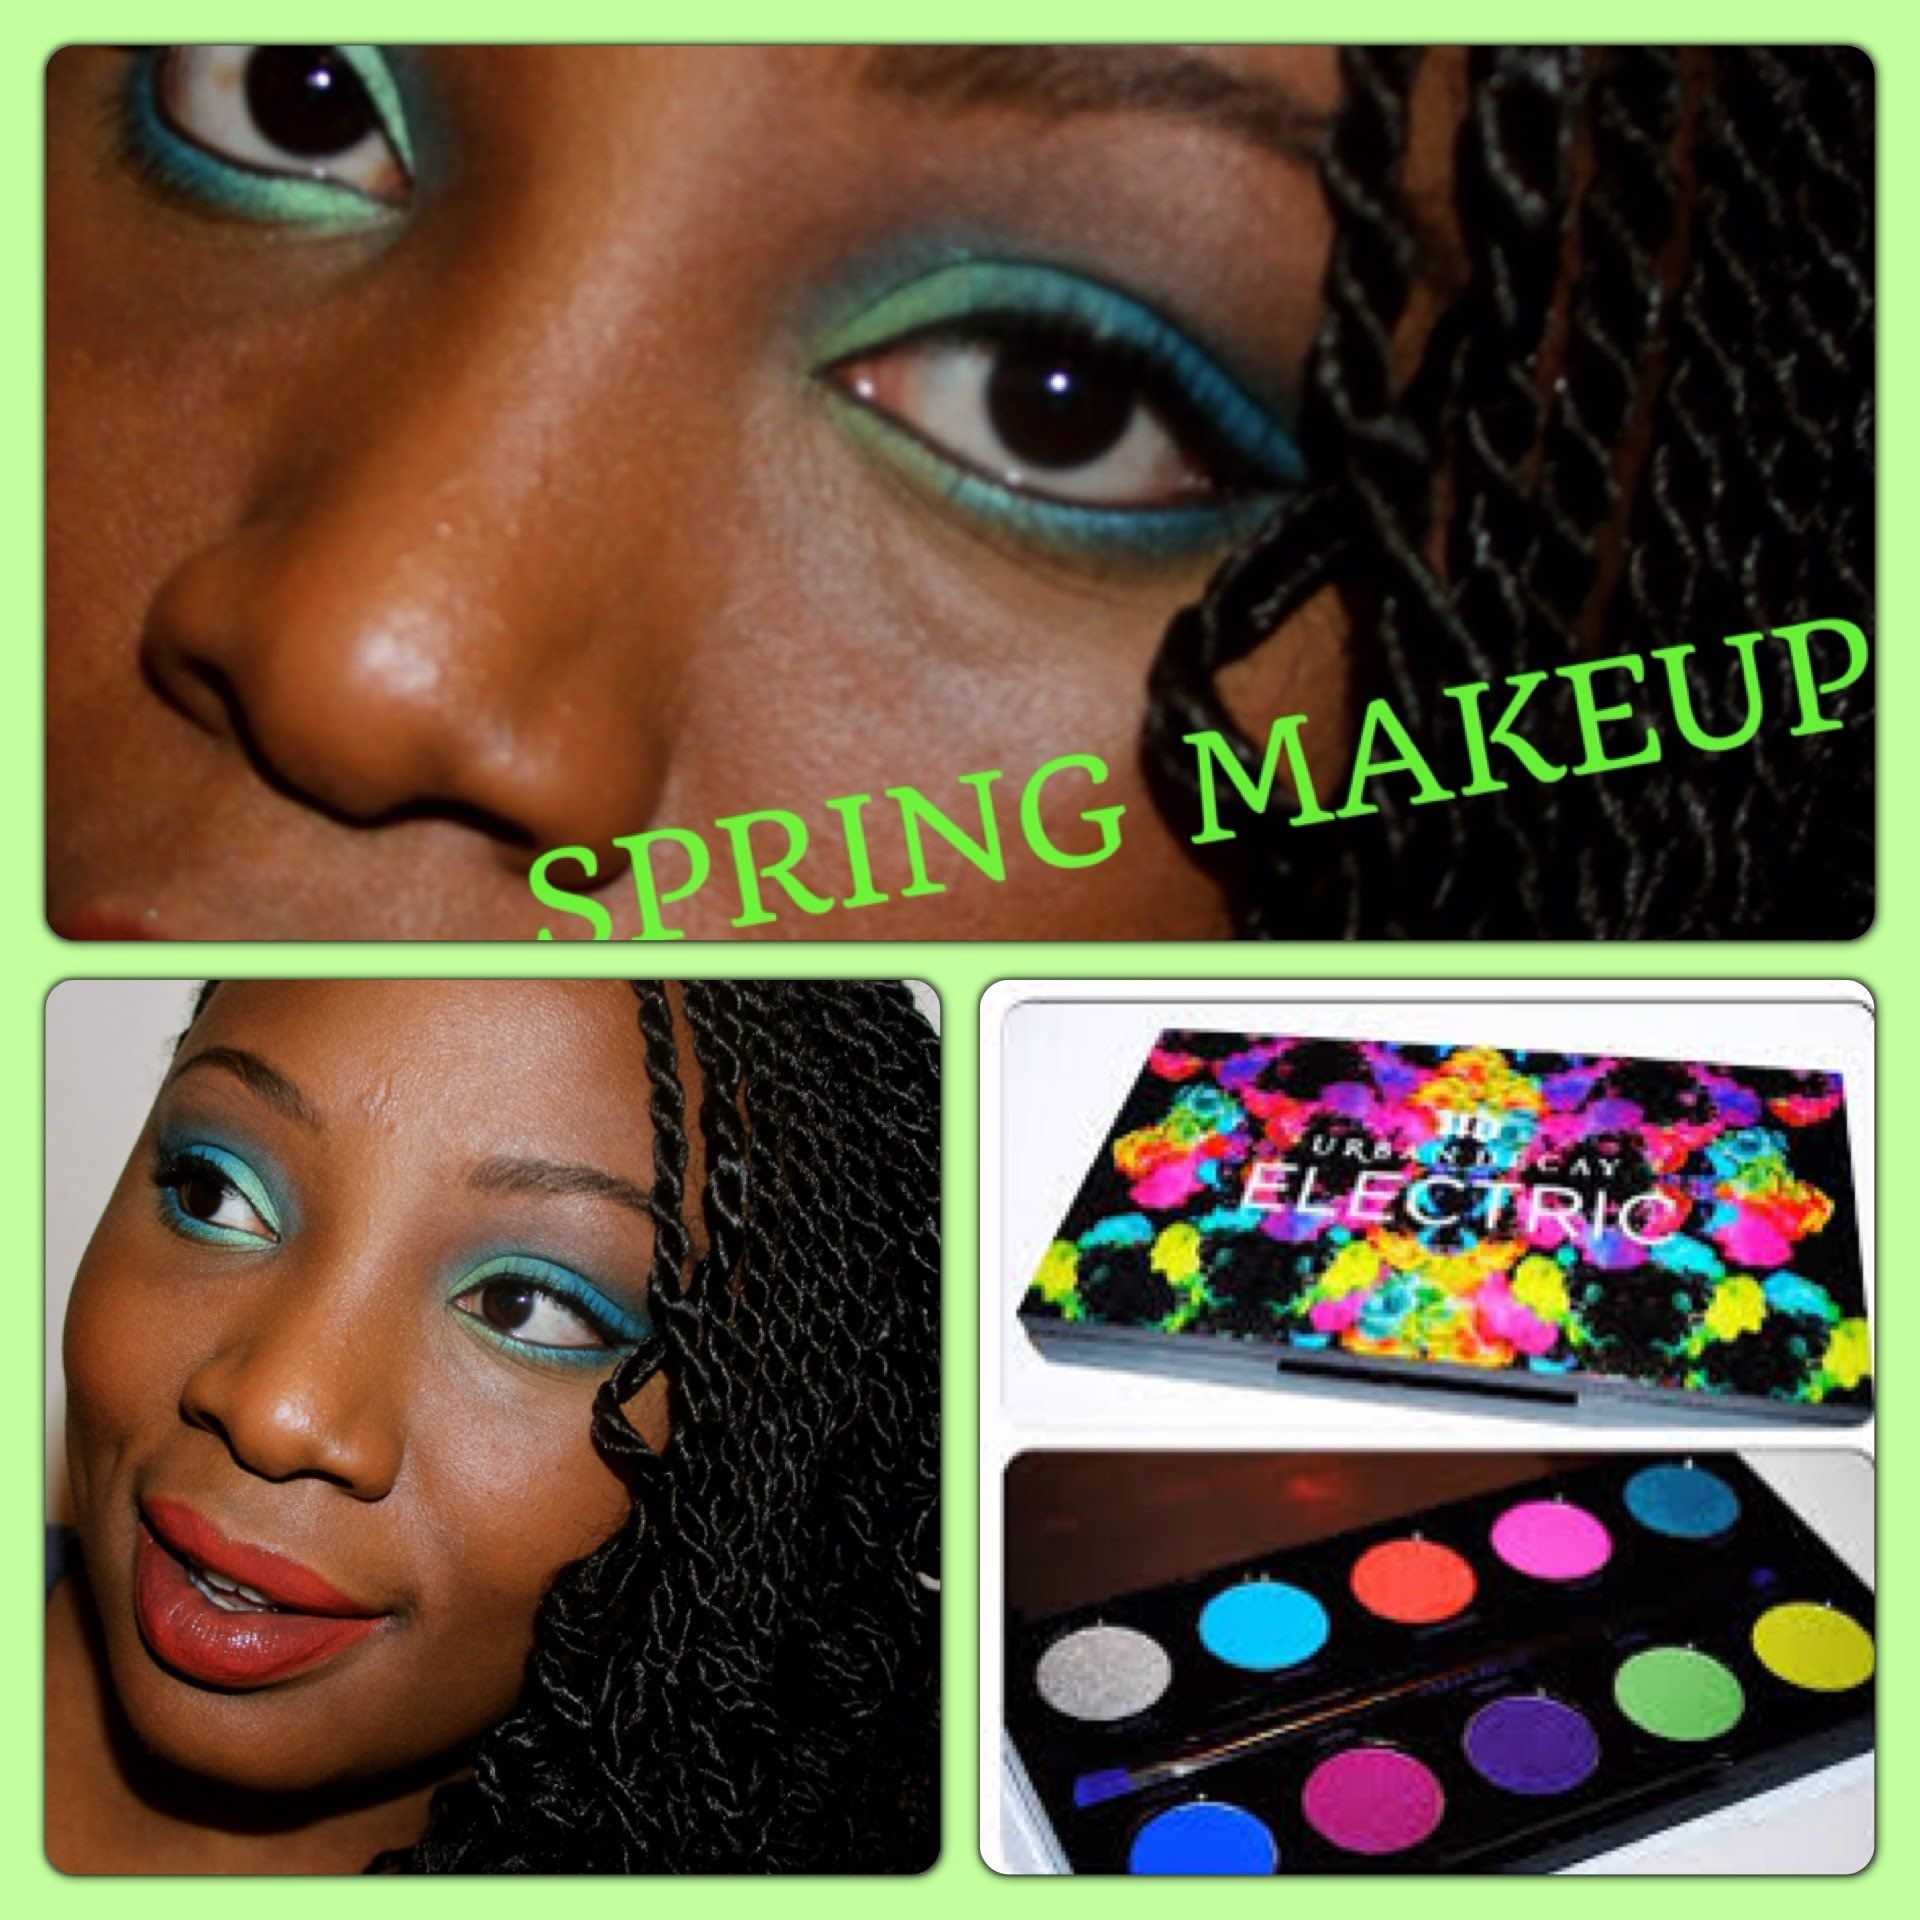 SPRING MAKEUP TUTORIAL W/ URBAN DECAY ELECTRIC PALETTE BLUE GREEN